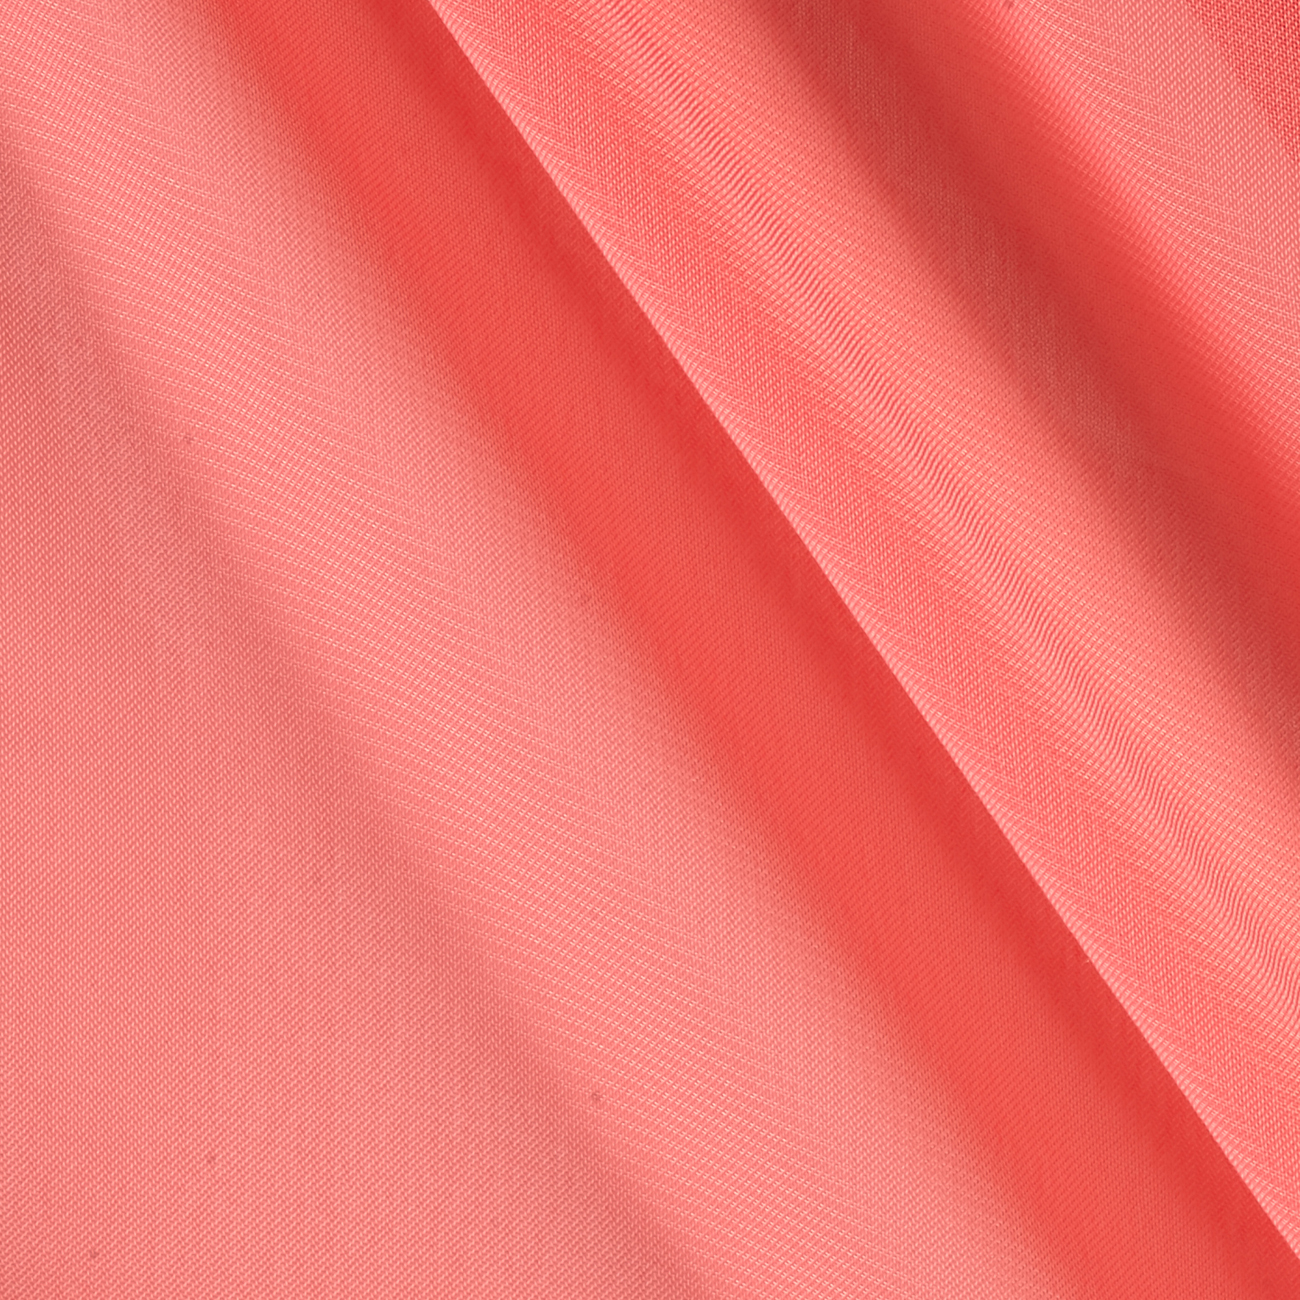 Chiffon Solid Coral Fabric by Ben in USA